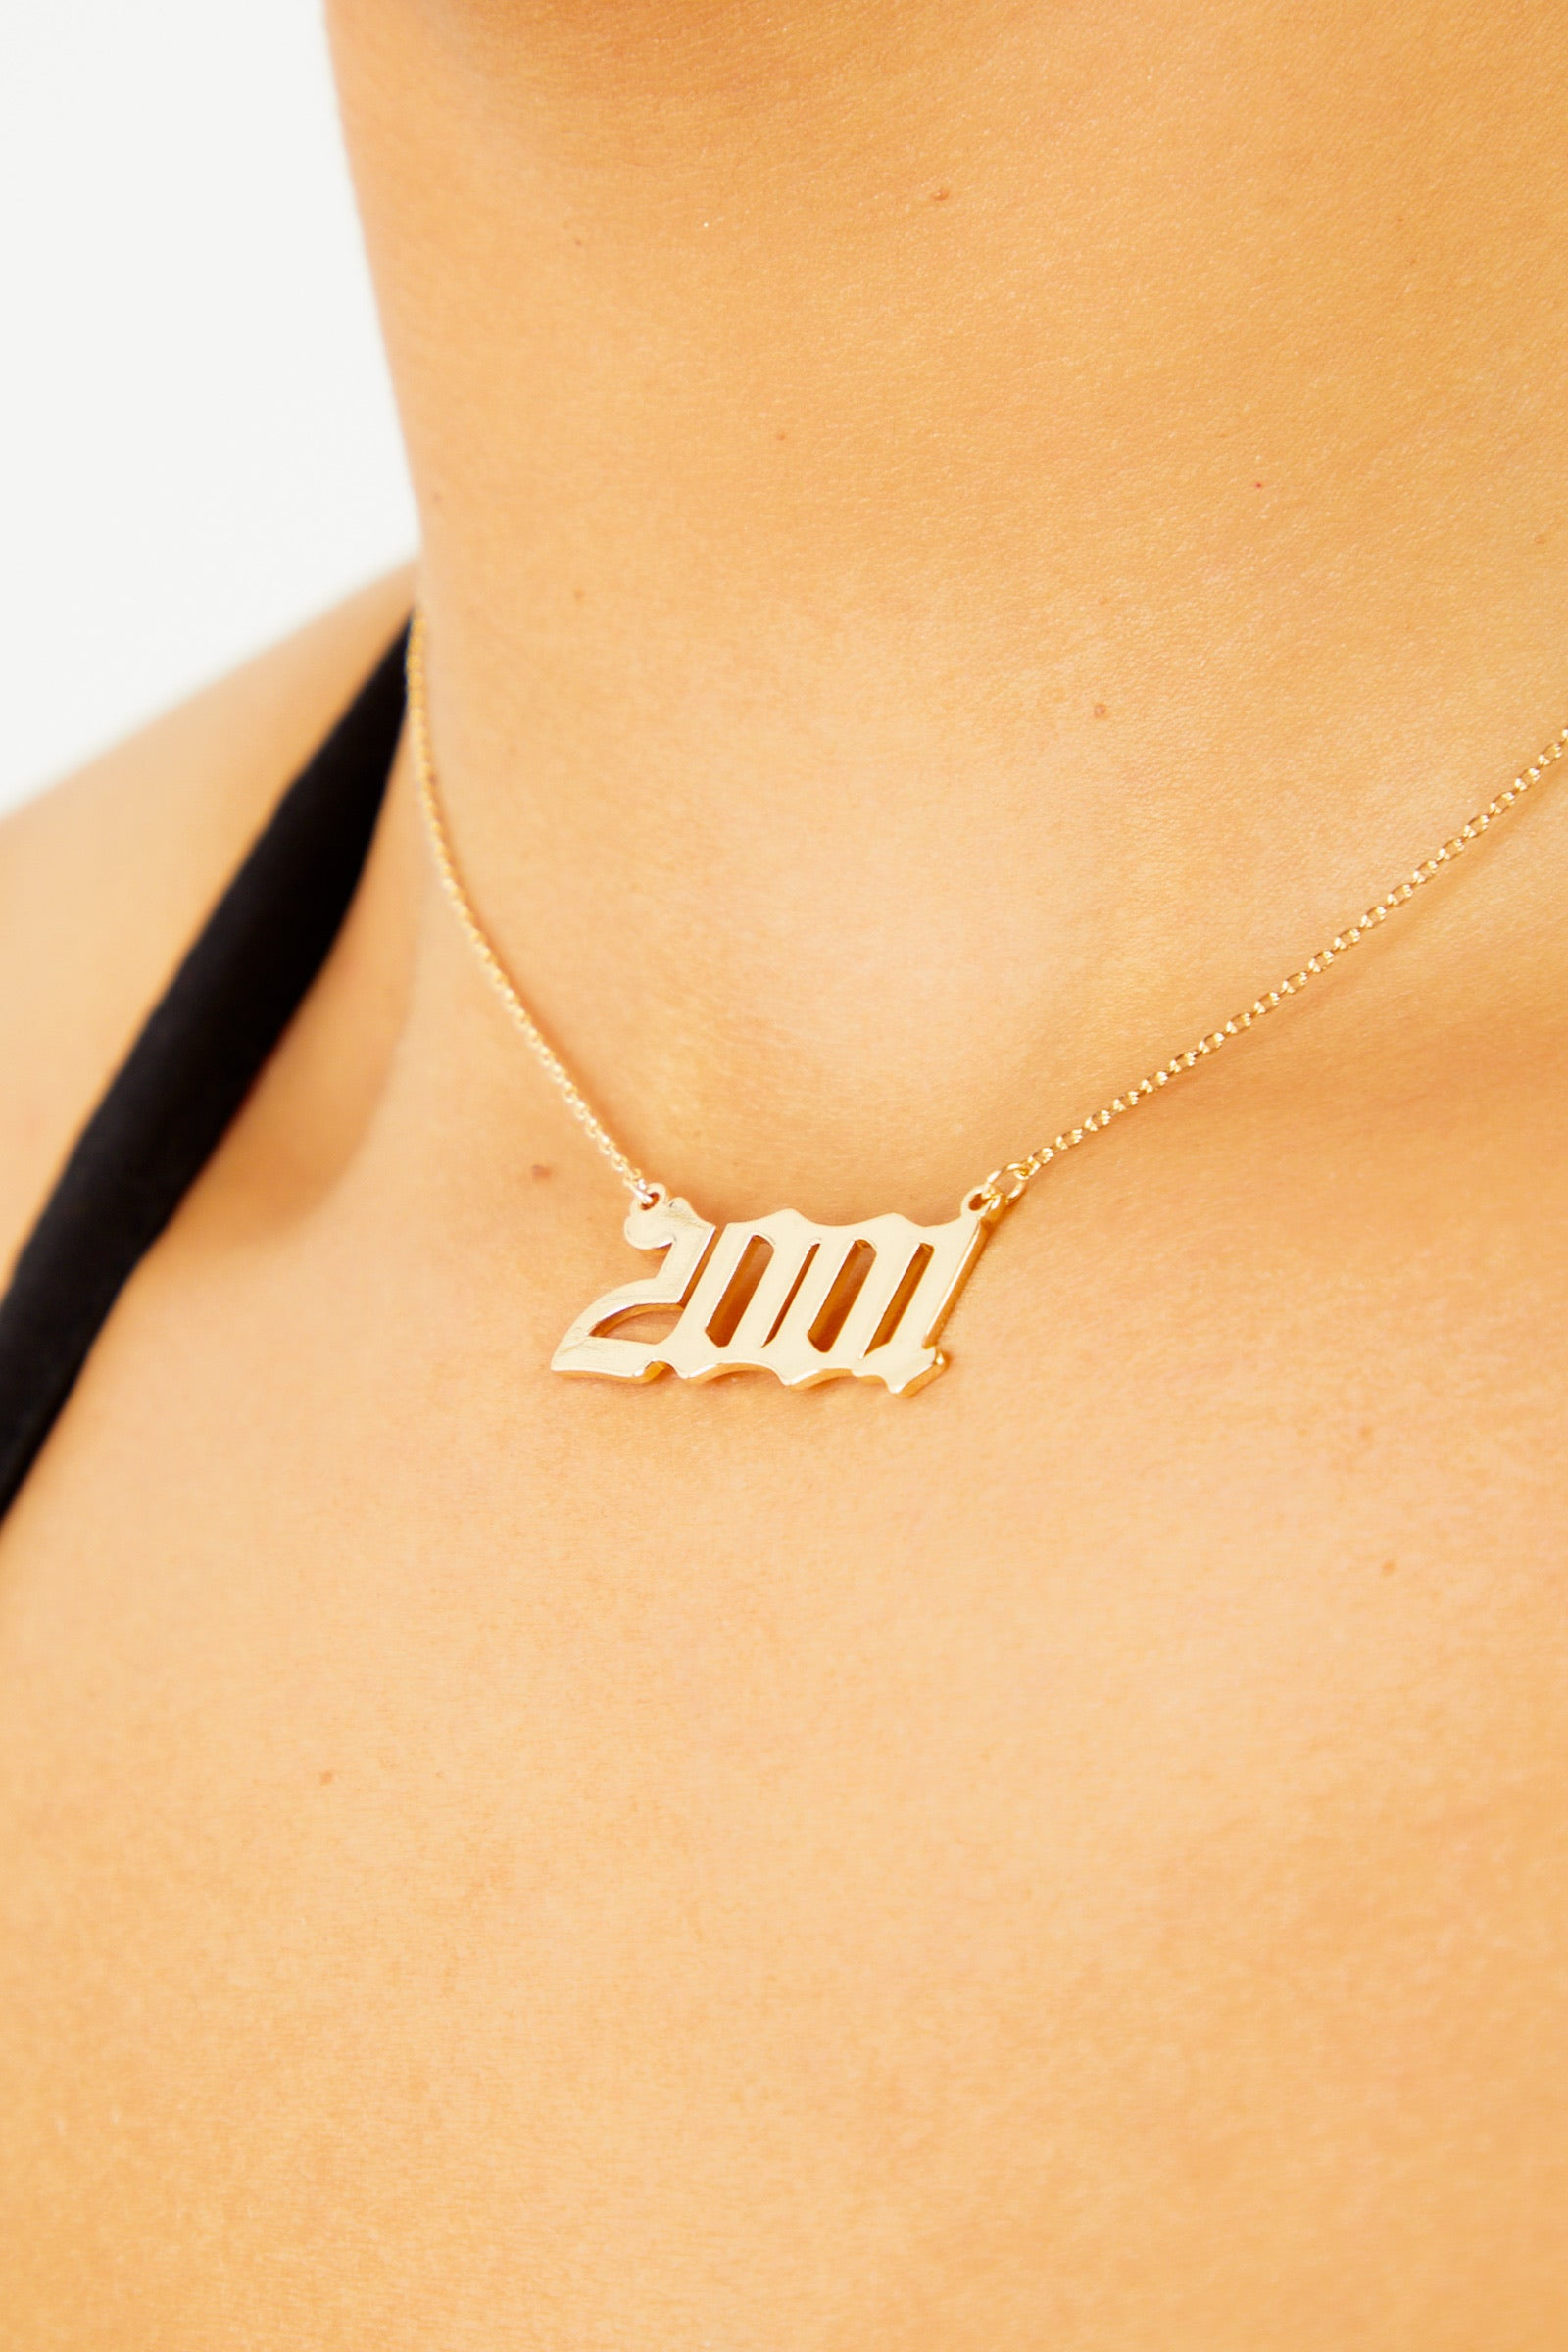 2001 Pendant Necklace - Gold